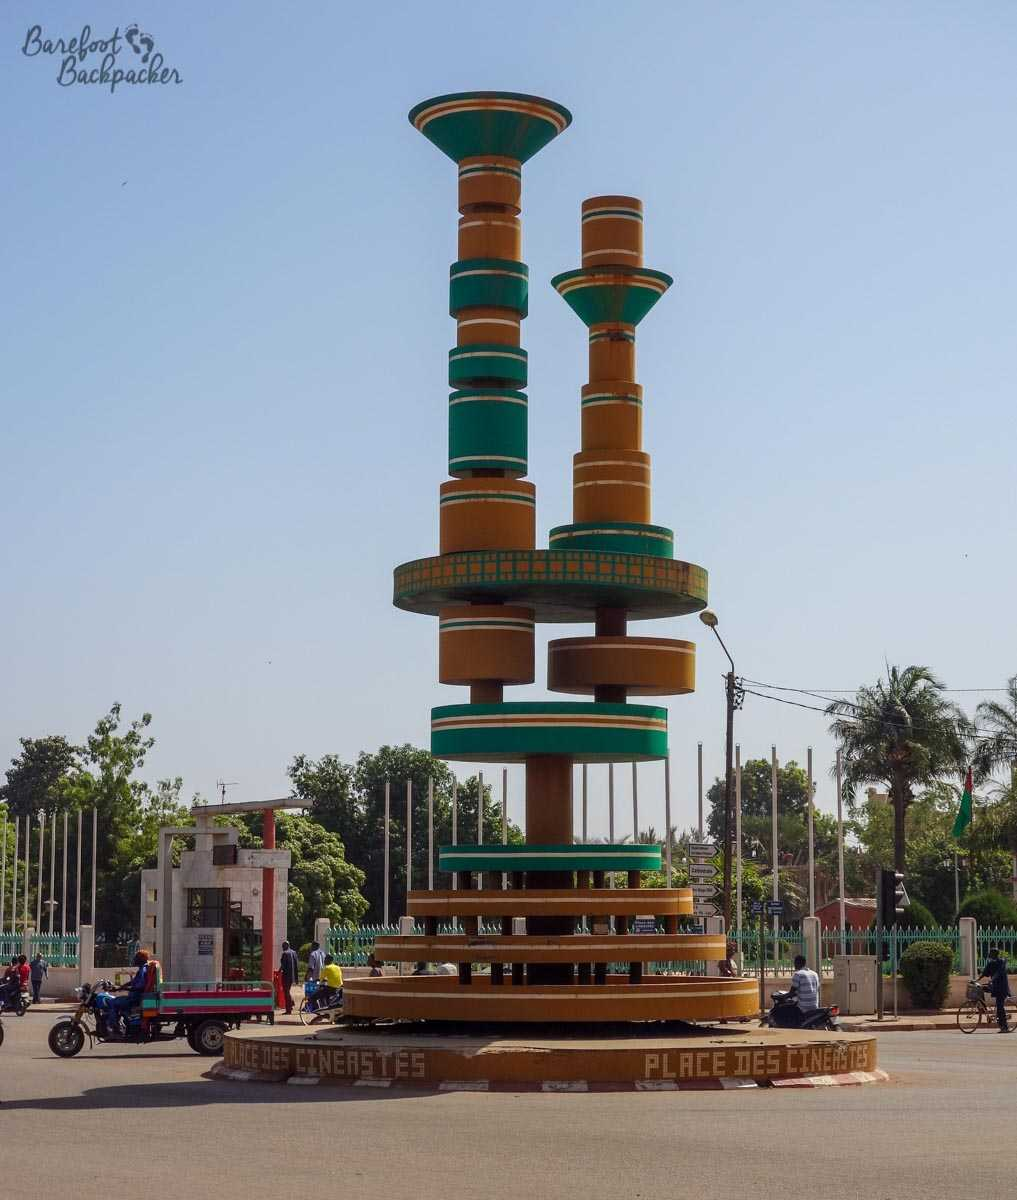 Odd sculpture at Place des Cineastes, Ouagadougou, Burkina Faso. Towers that look like they're made of children's shape toys.